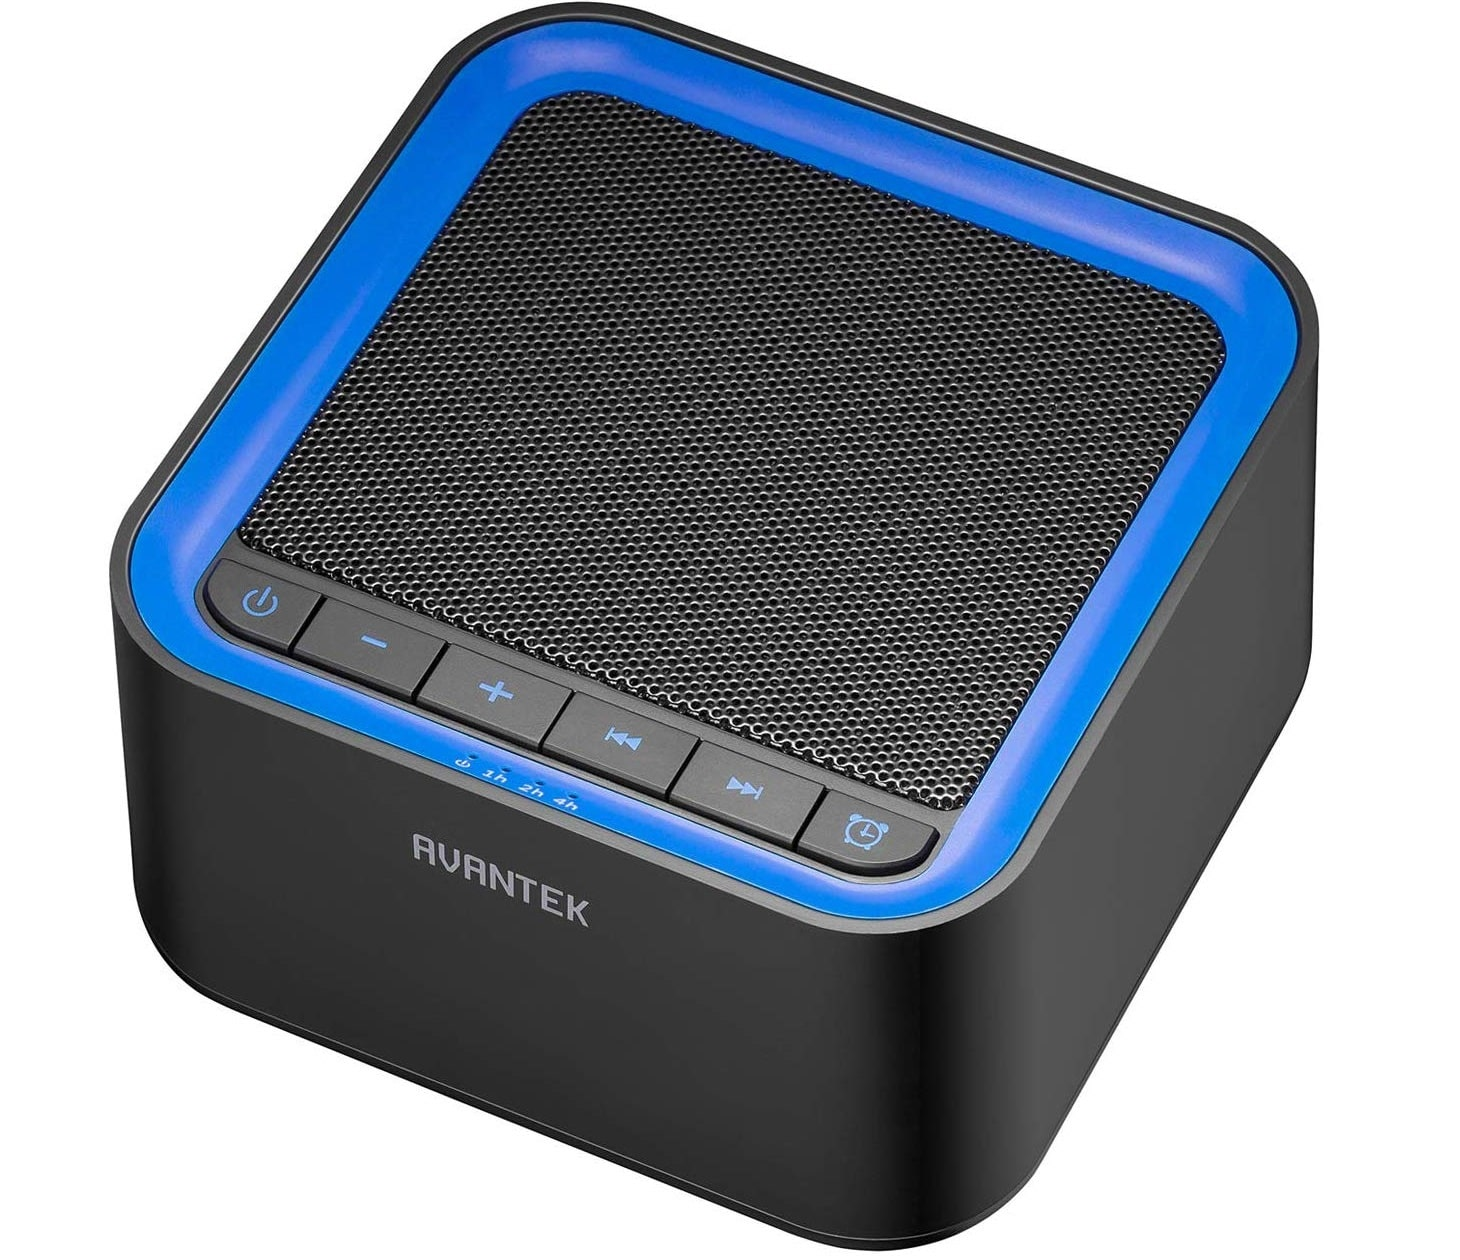 5.AVANTEK White Noise Sound Machine for Sleeping, 20 Non-Looping High Fidelity Soothing Sounds with 30 Levels of Volume, 7 Timer Settings and Memory Function